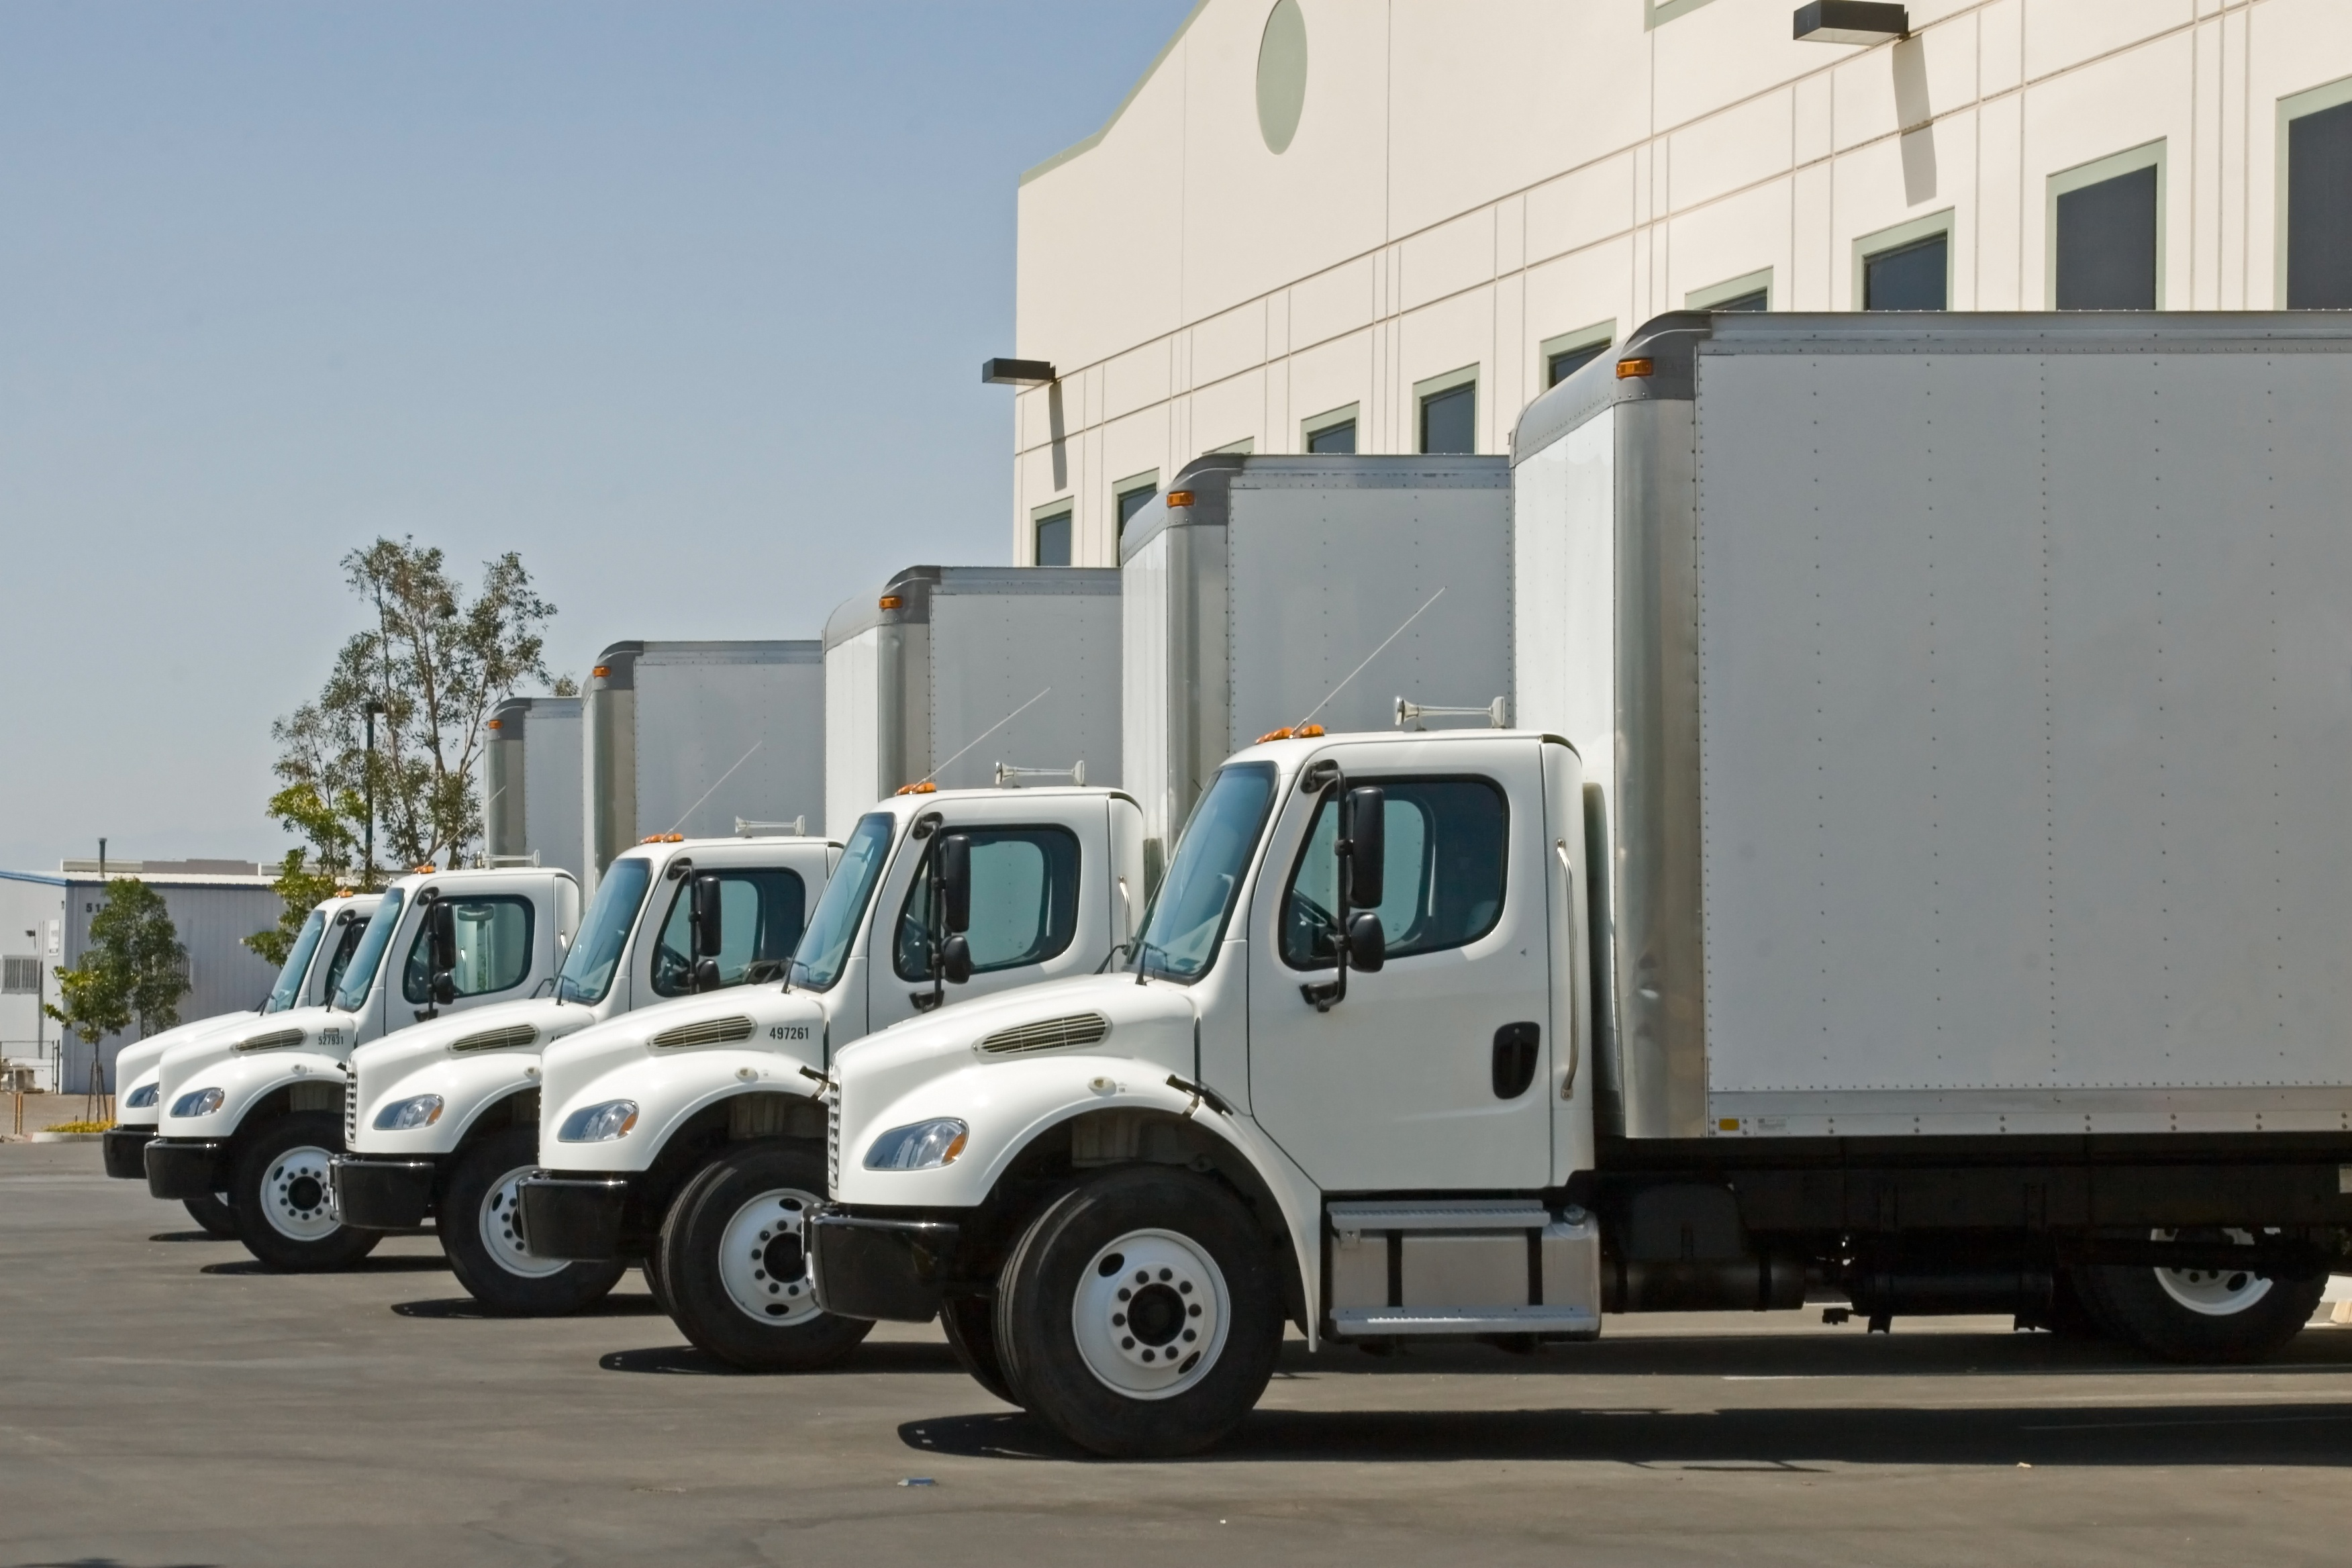 bigstock-The-many-means-of-transporting-26212793.jpg